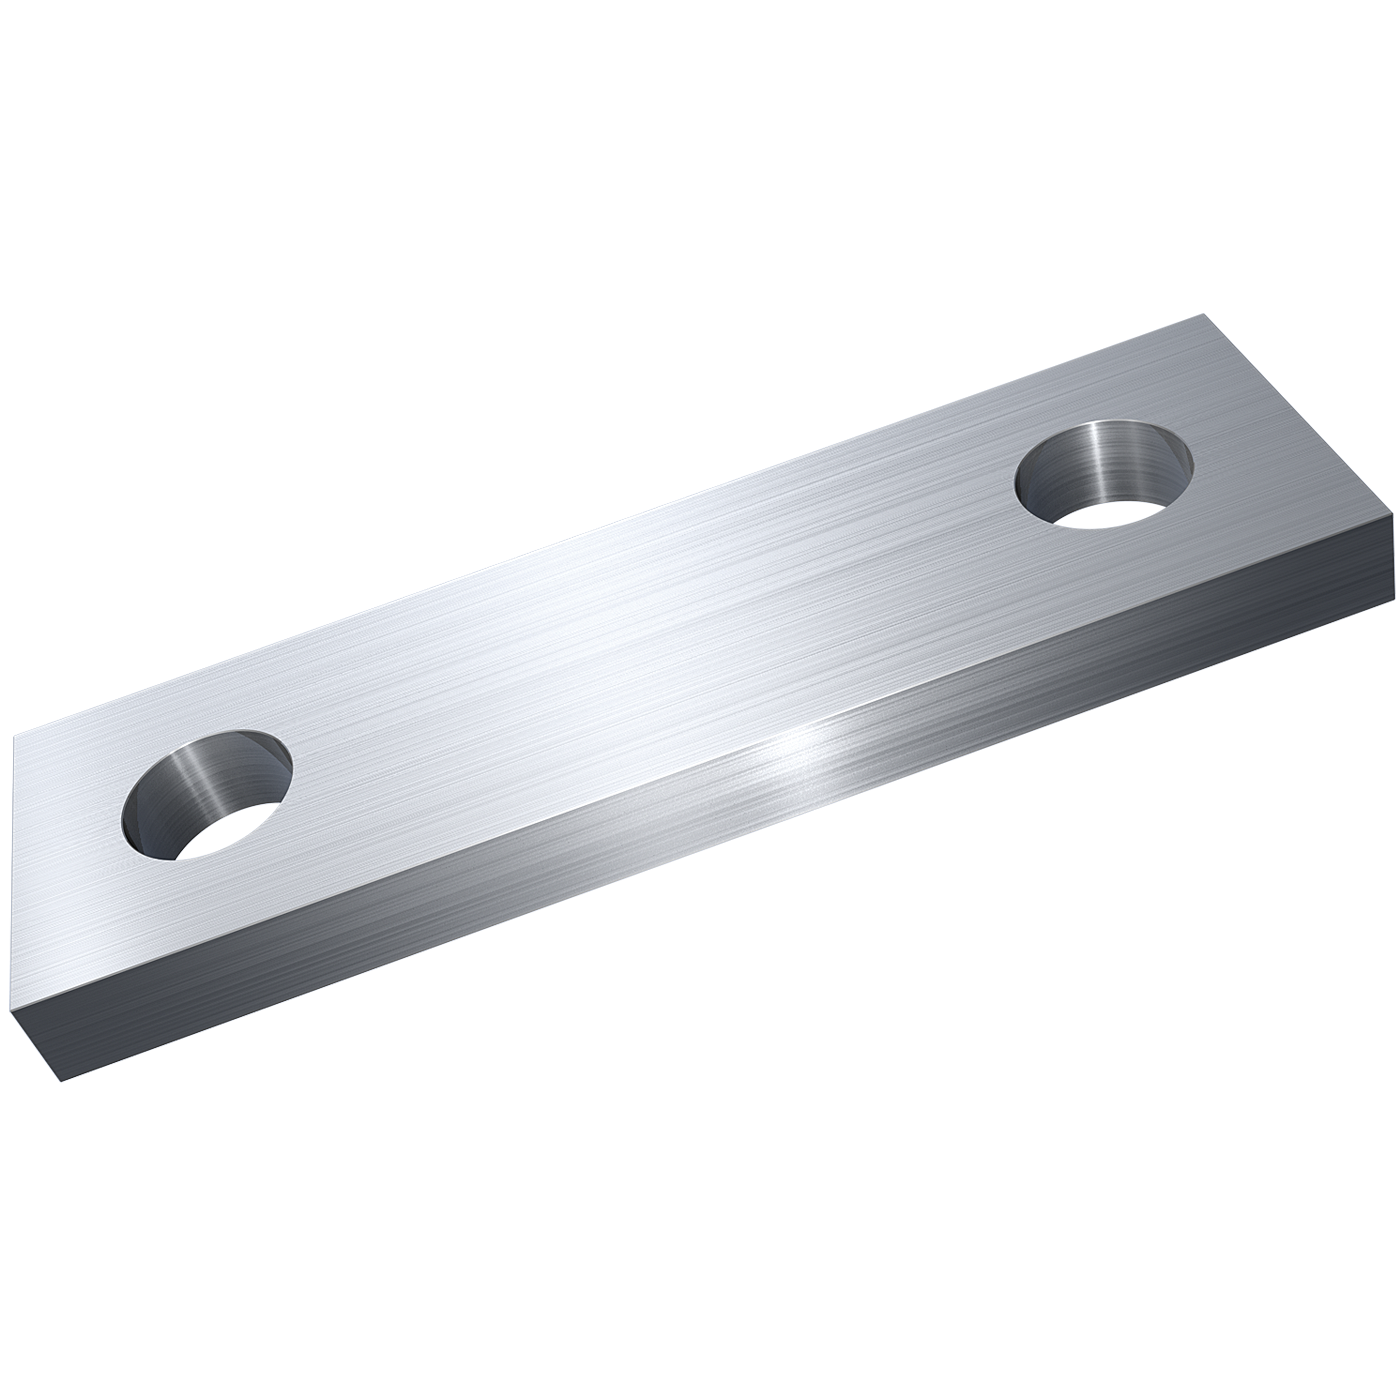 Axle holders, axle holder from mbo Osswald are according to DIN 15058. mbo Osswald offers these machine elements in material steel and stainless steel.